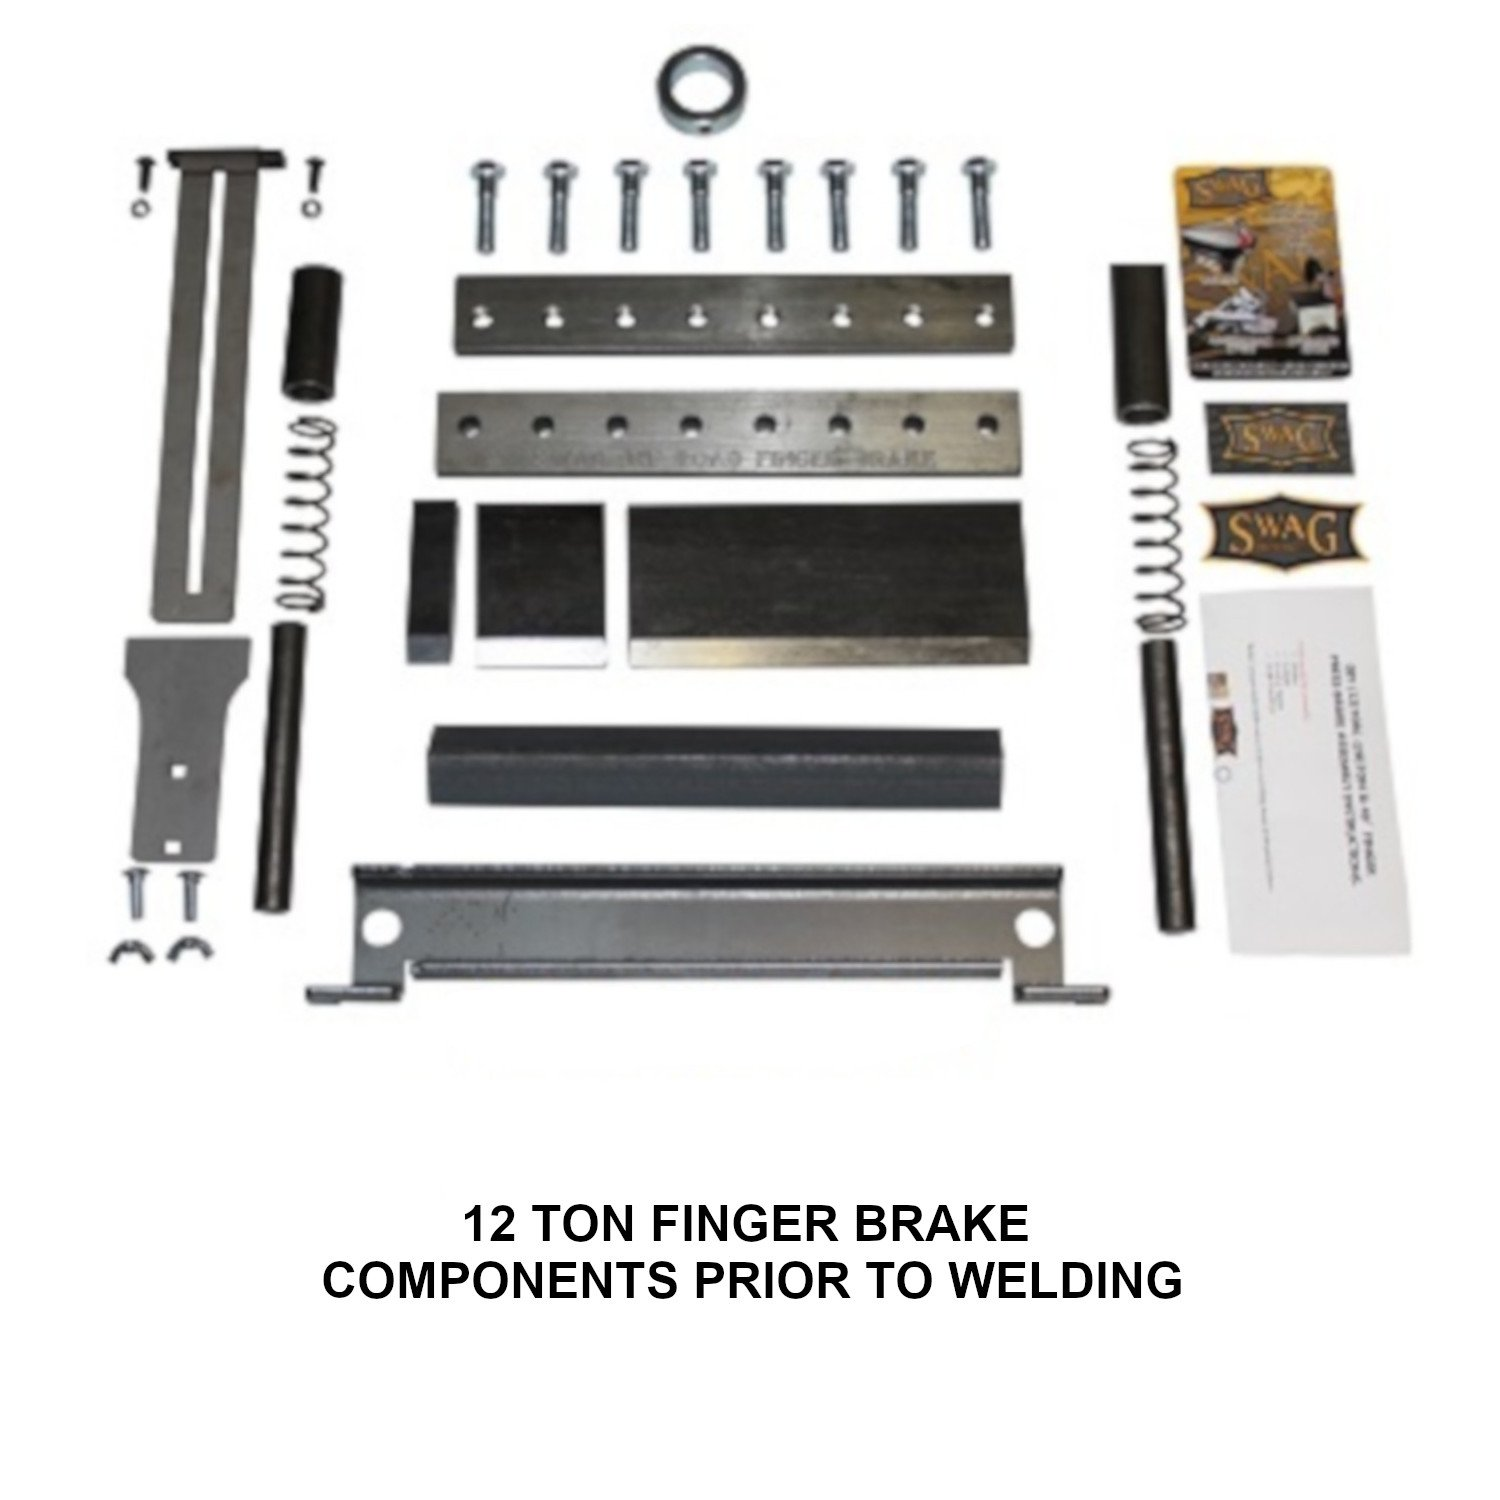 SWAG Off Road 12 TON Finger Brake''Fully Welded'' by SWAG Offroad (Image #3)